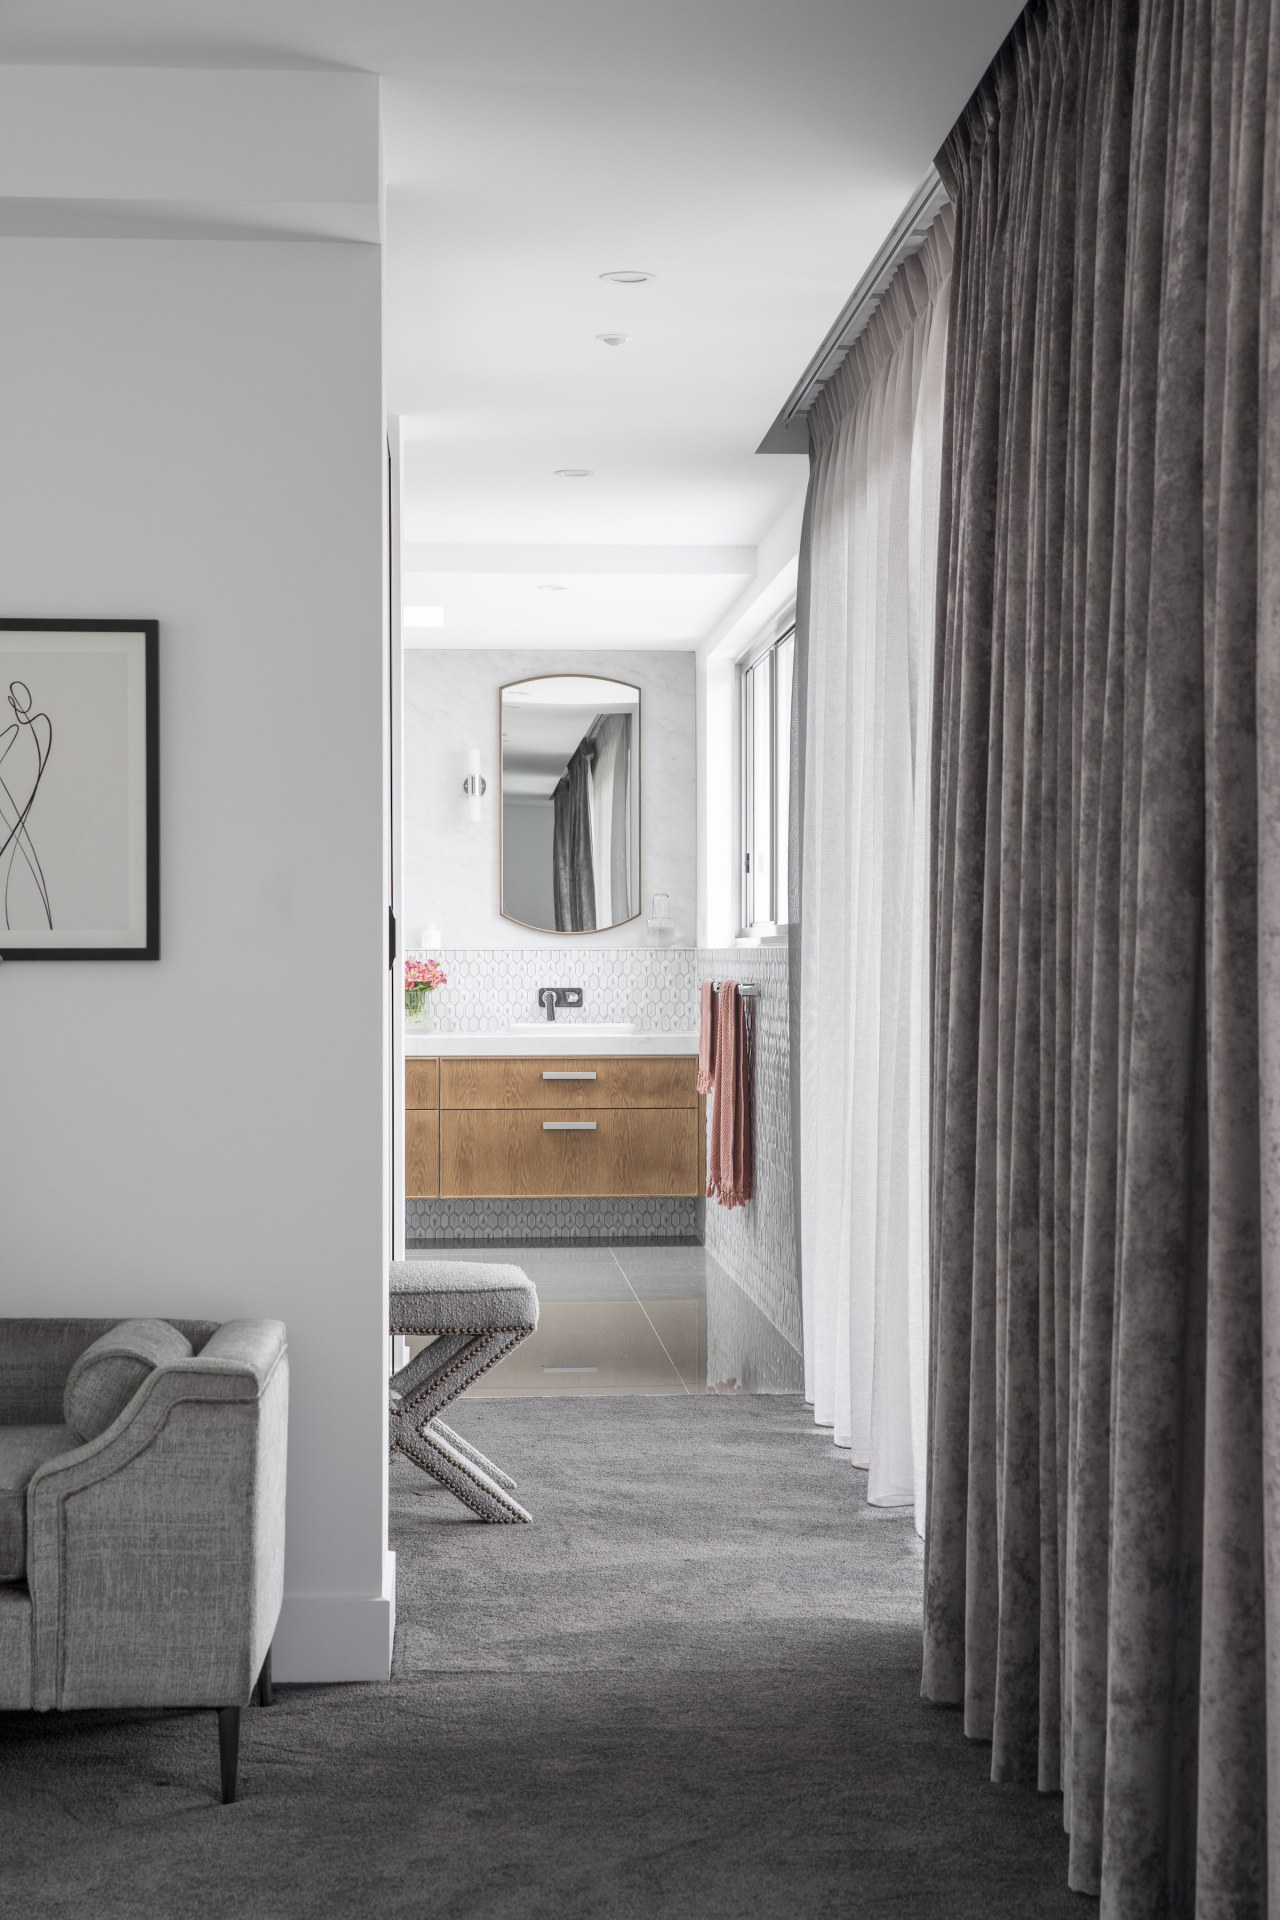 The hallway – lined with both sheer floating